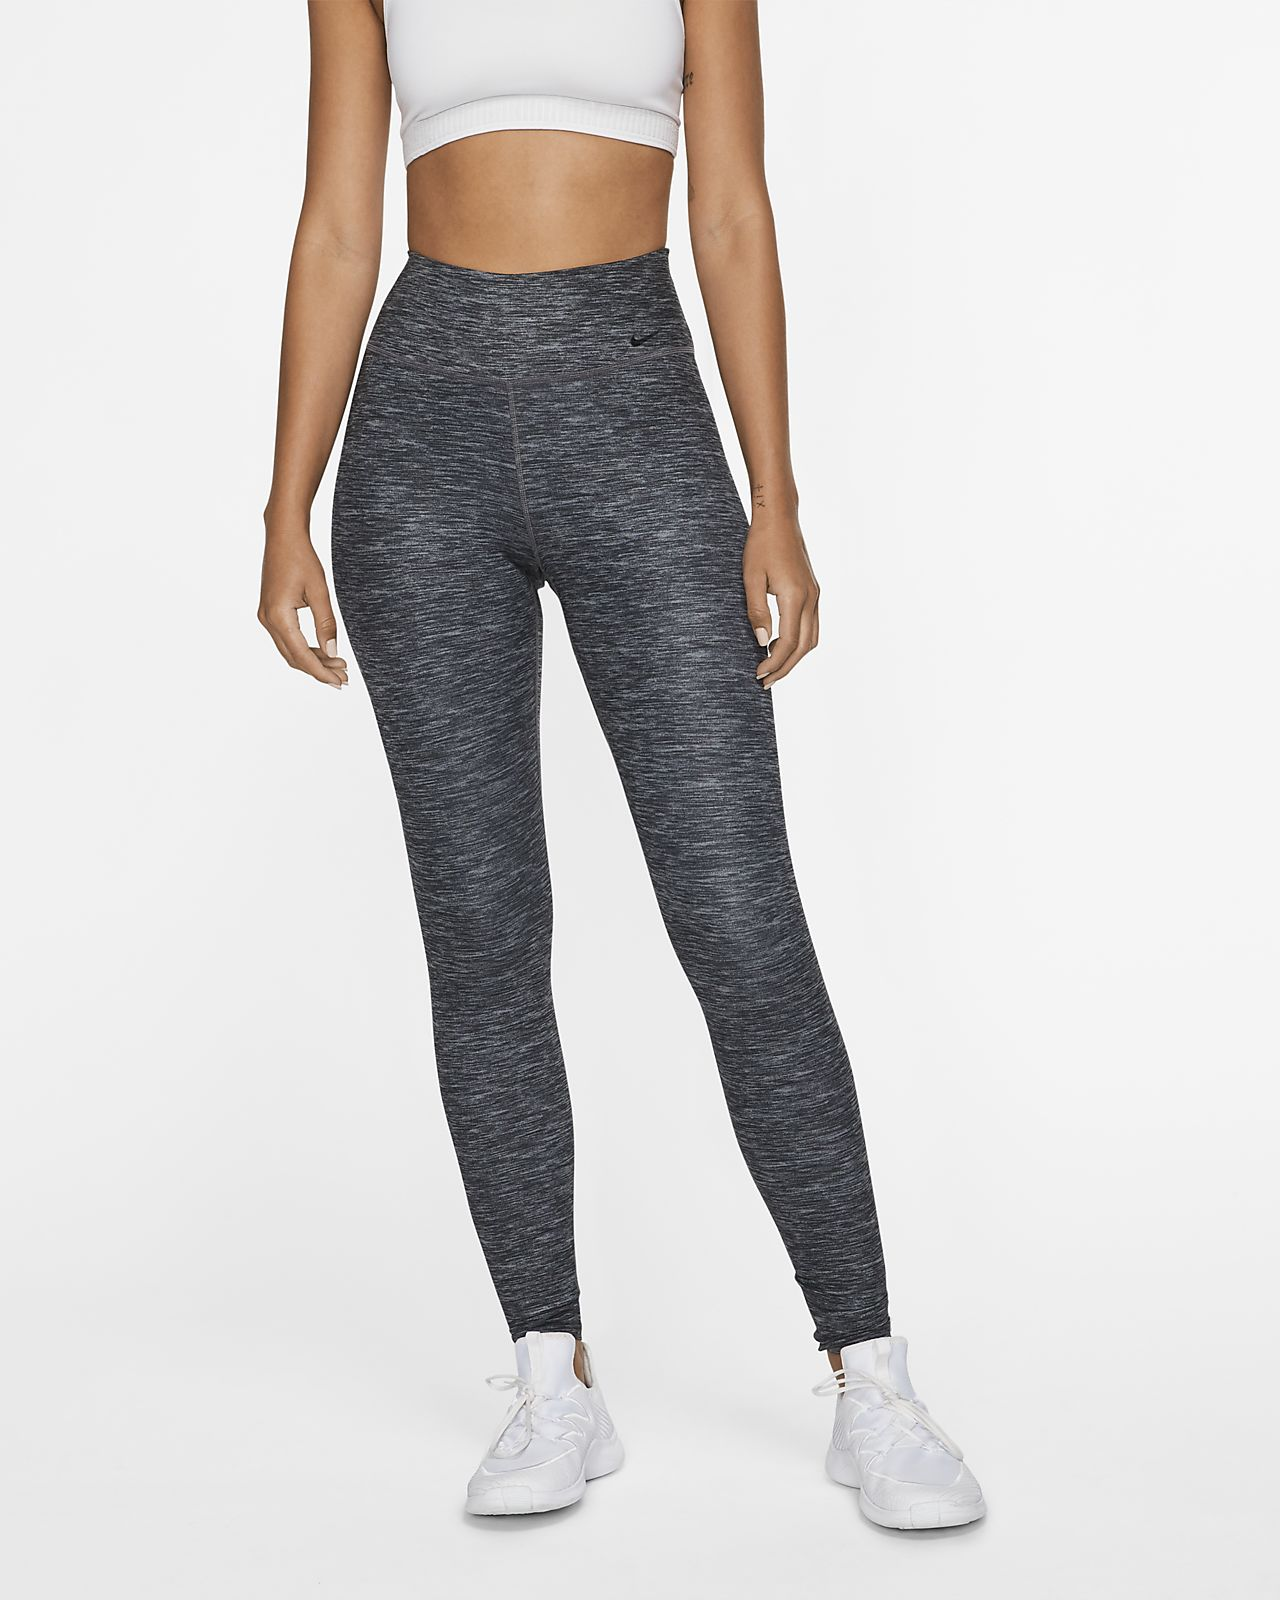 Nike One Luxe Malles jaspiades - Dona